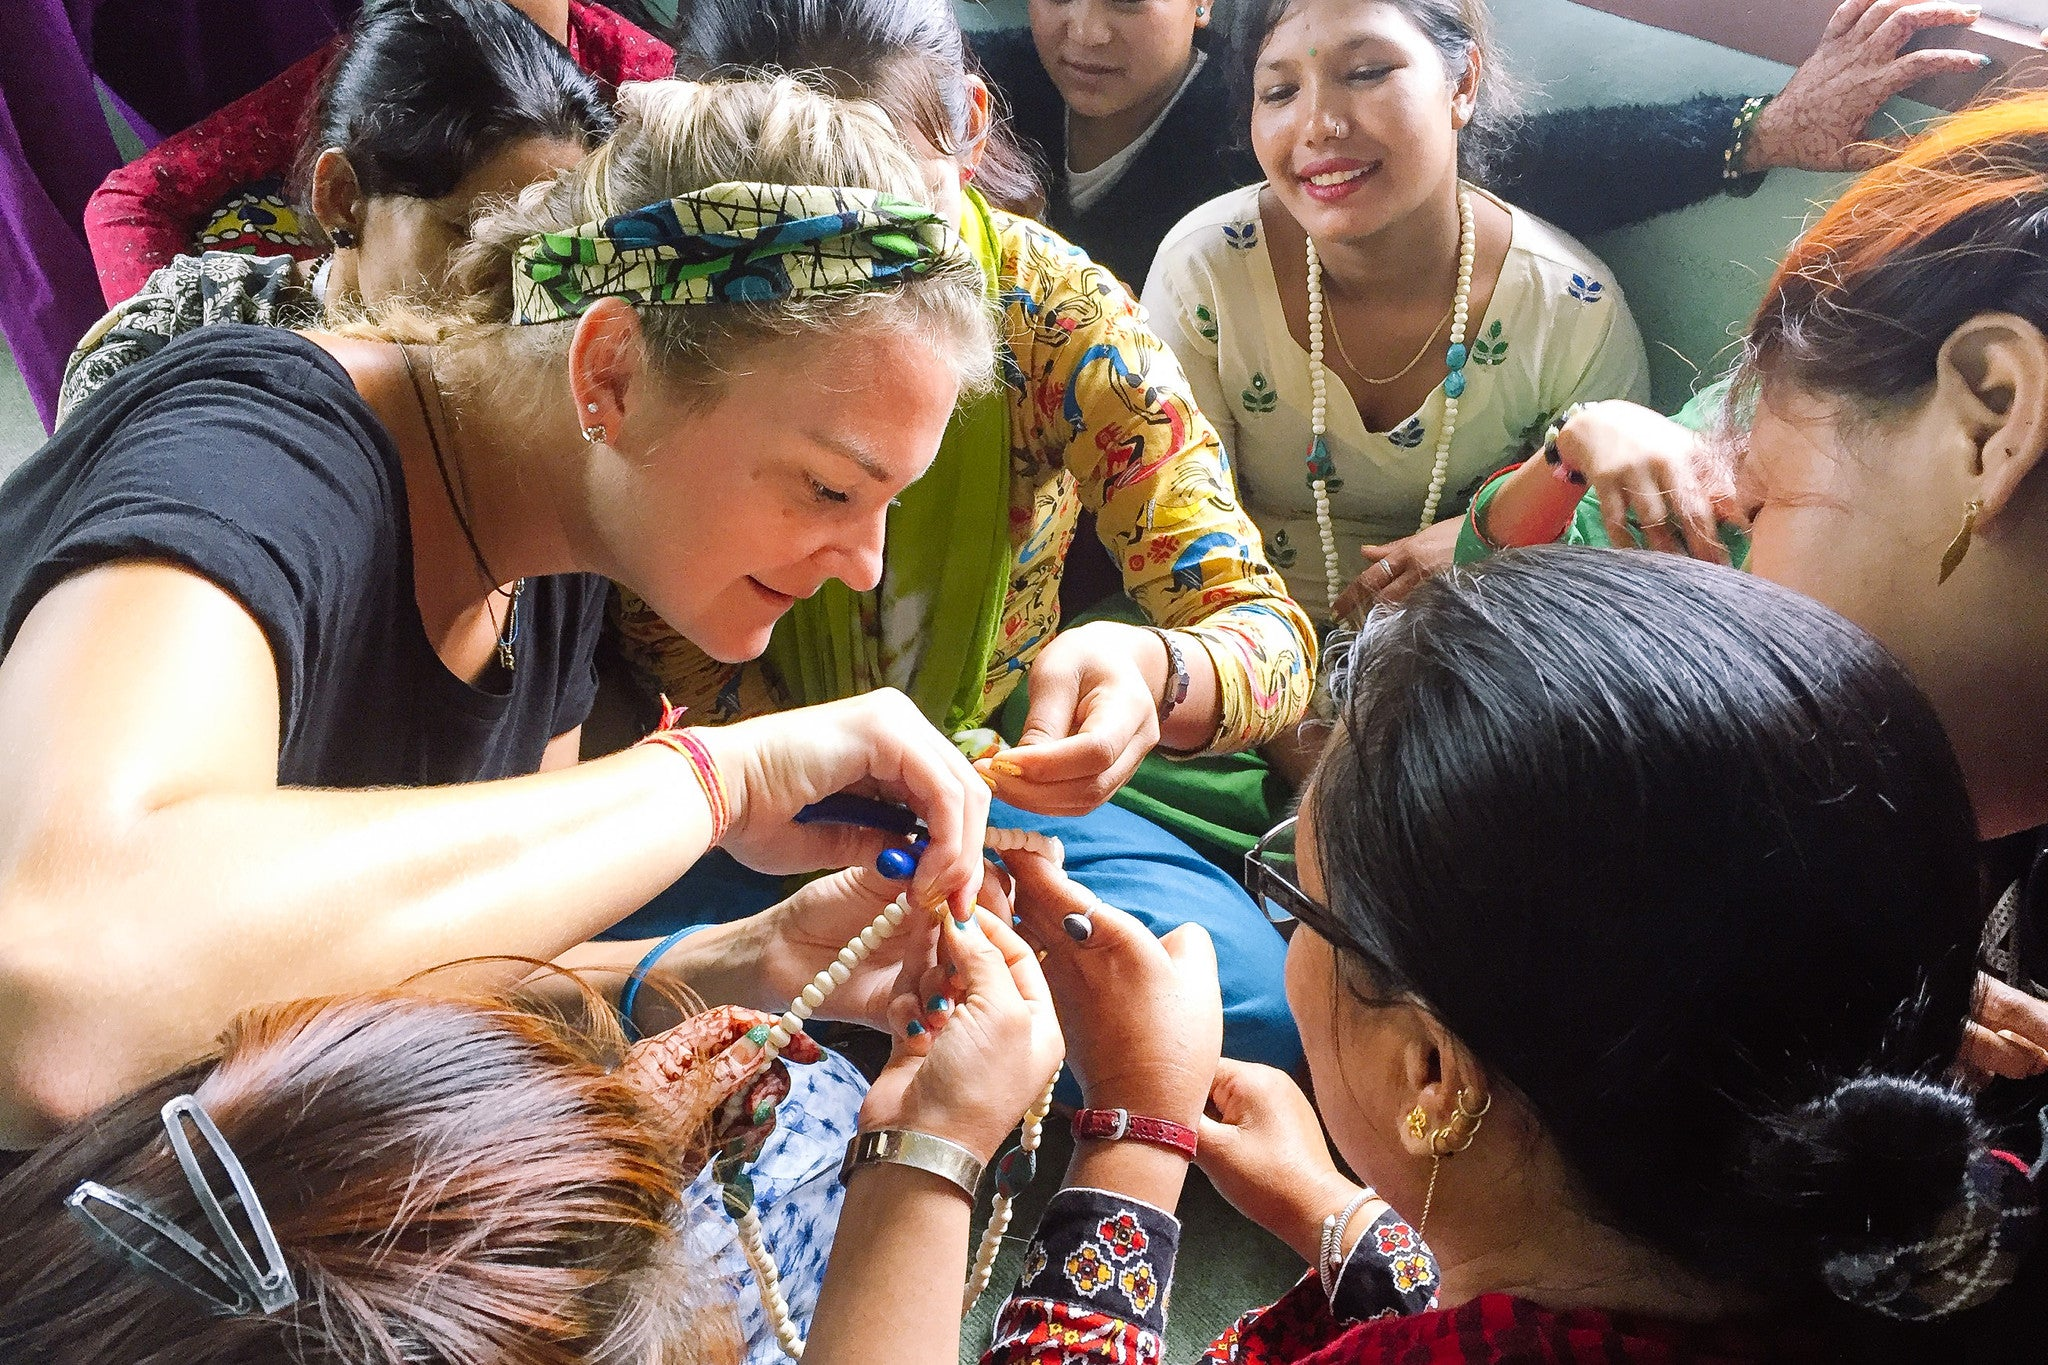 Nepal: Jewelry designer from U.S. visits 'She Has Hope' home as guest teacher